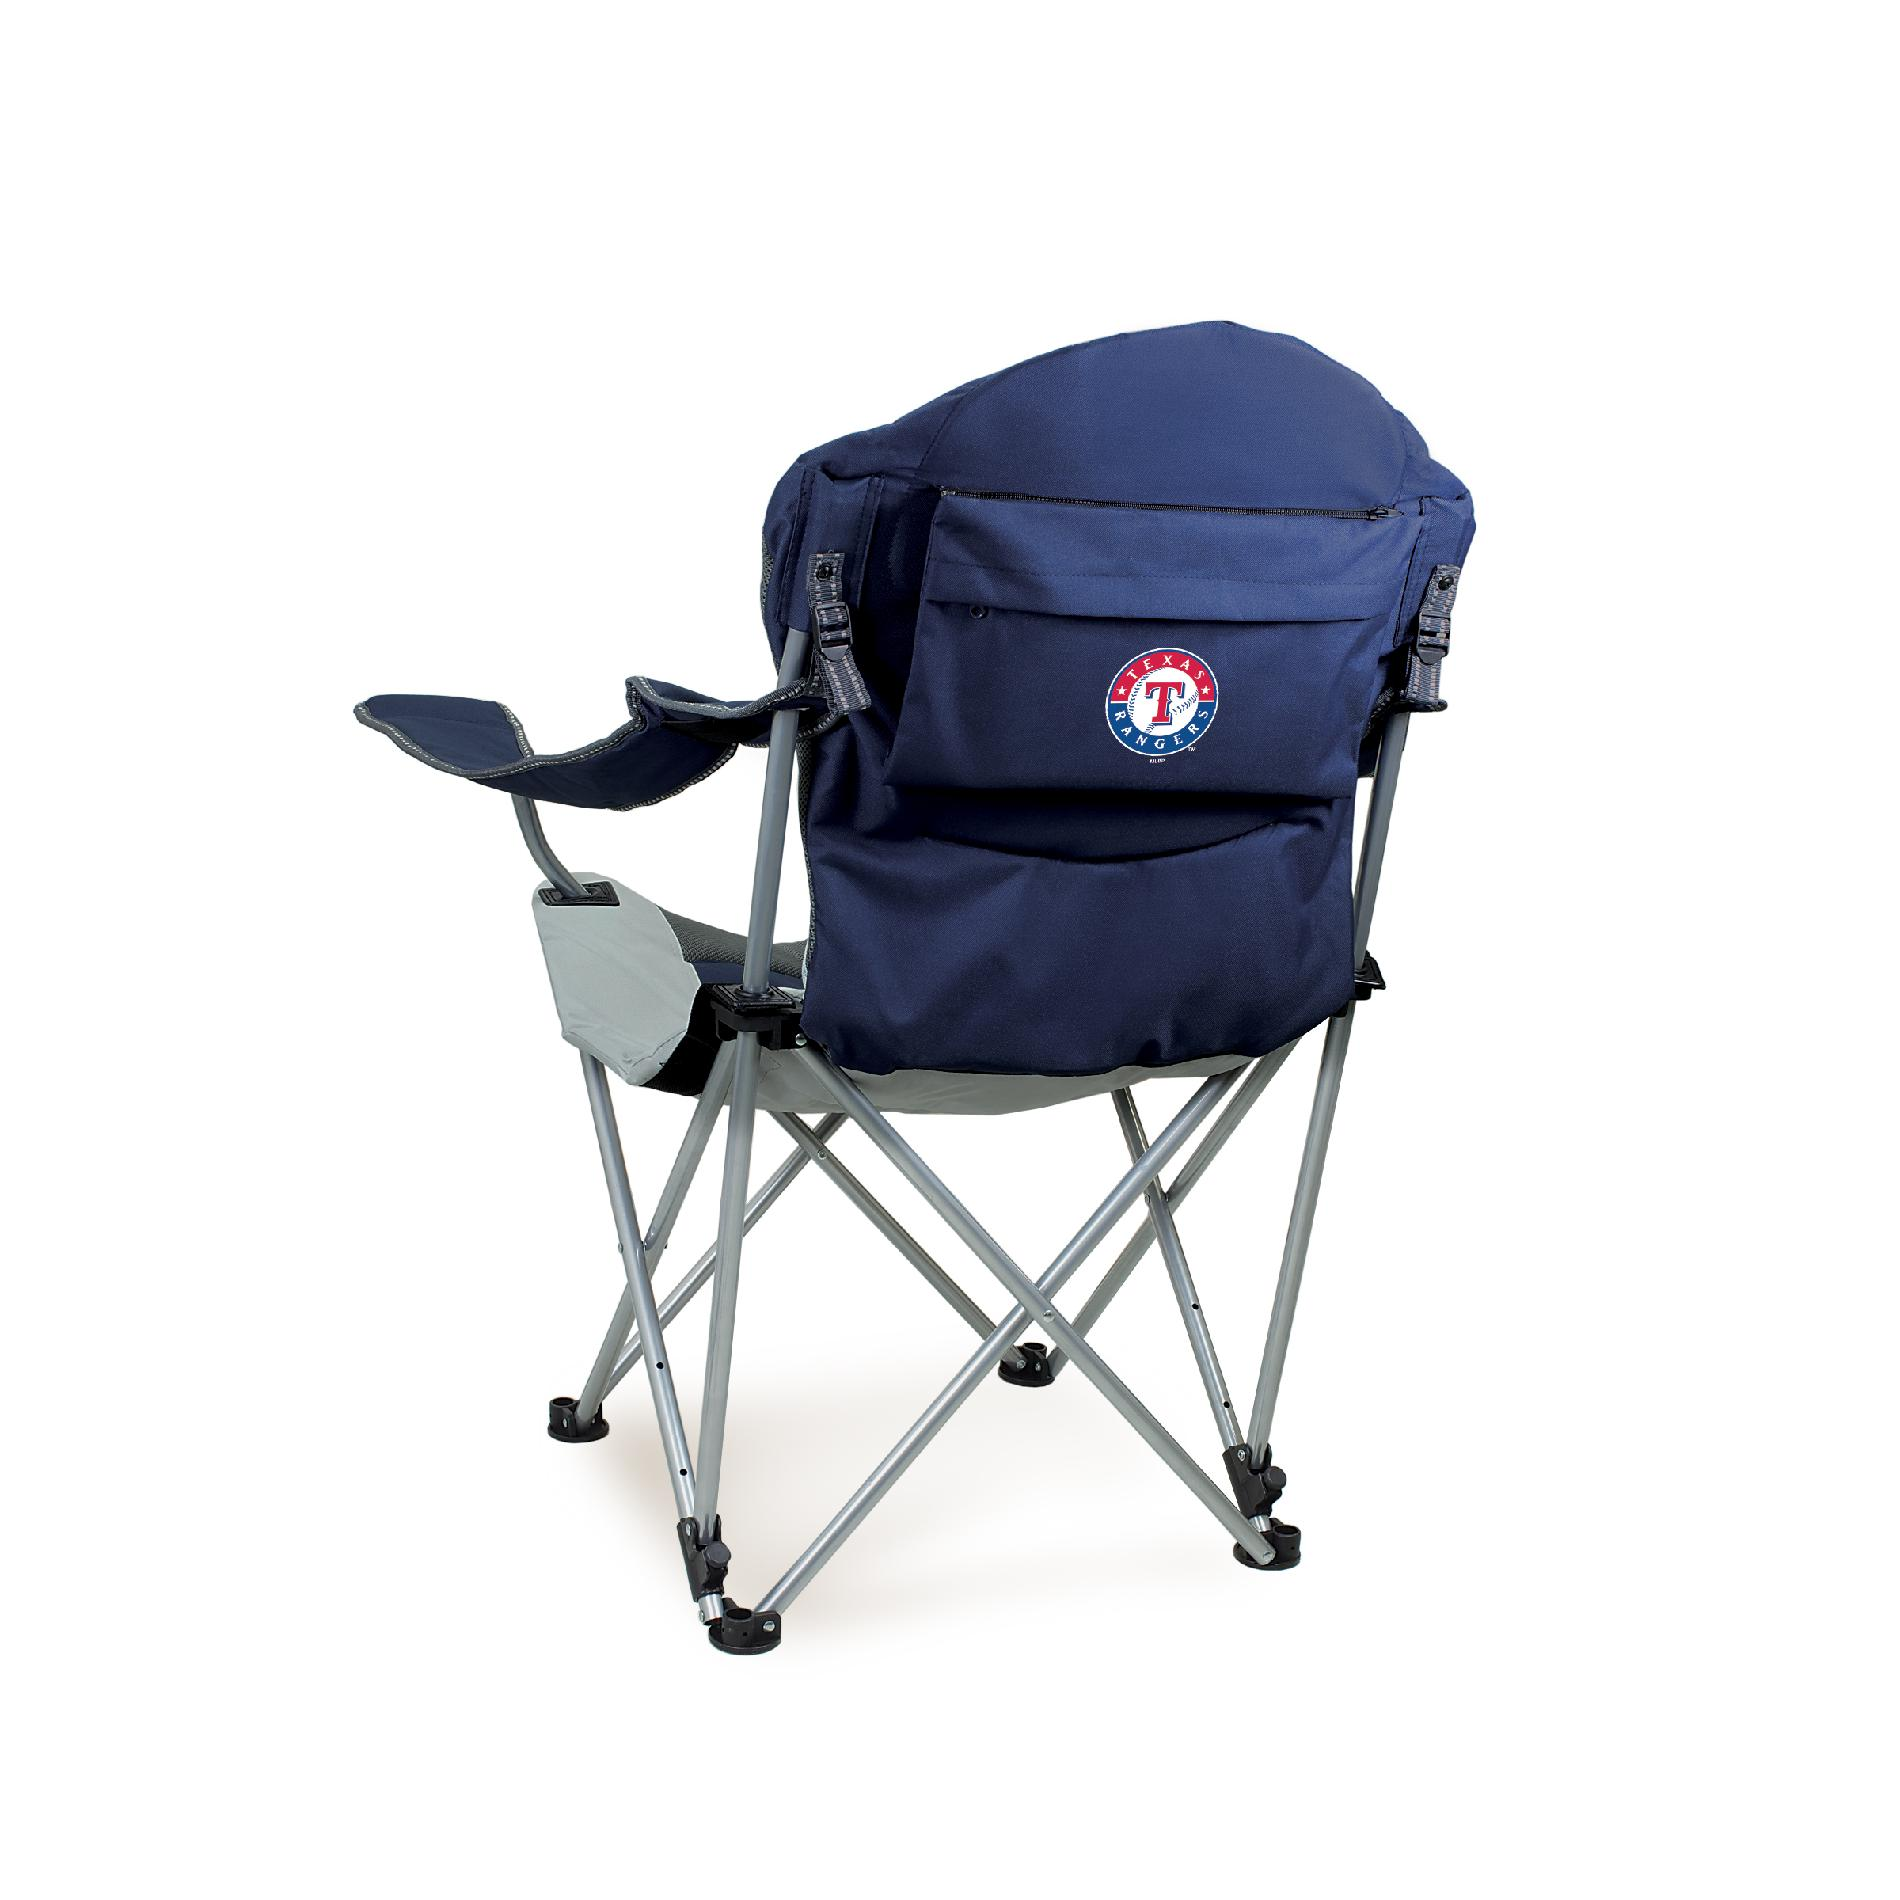 Picnic Time Reclining Camp Chair - MLB - Navy